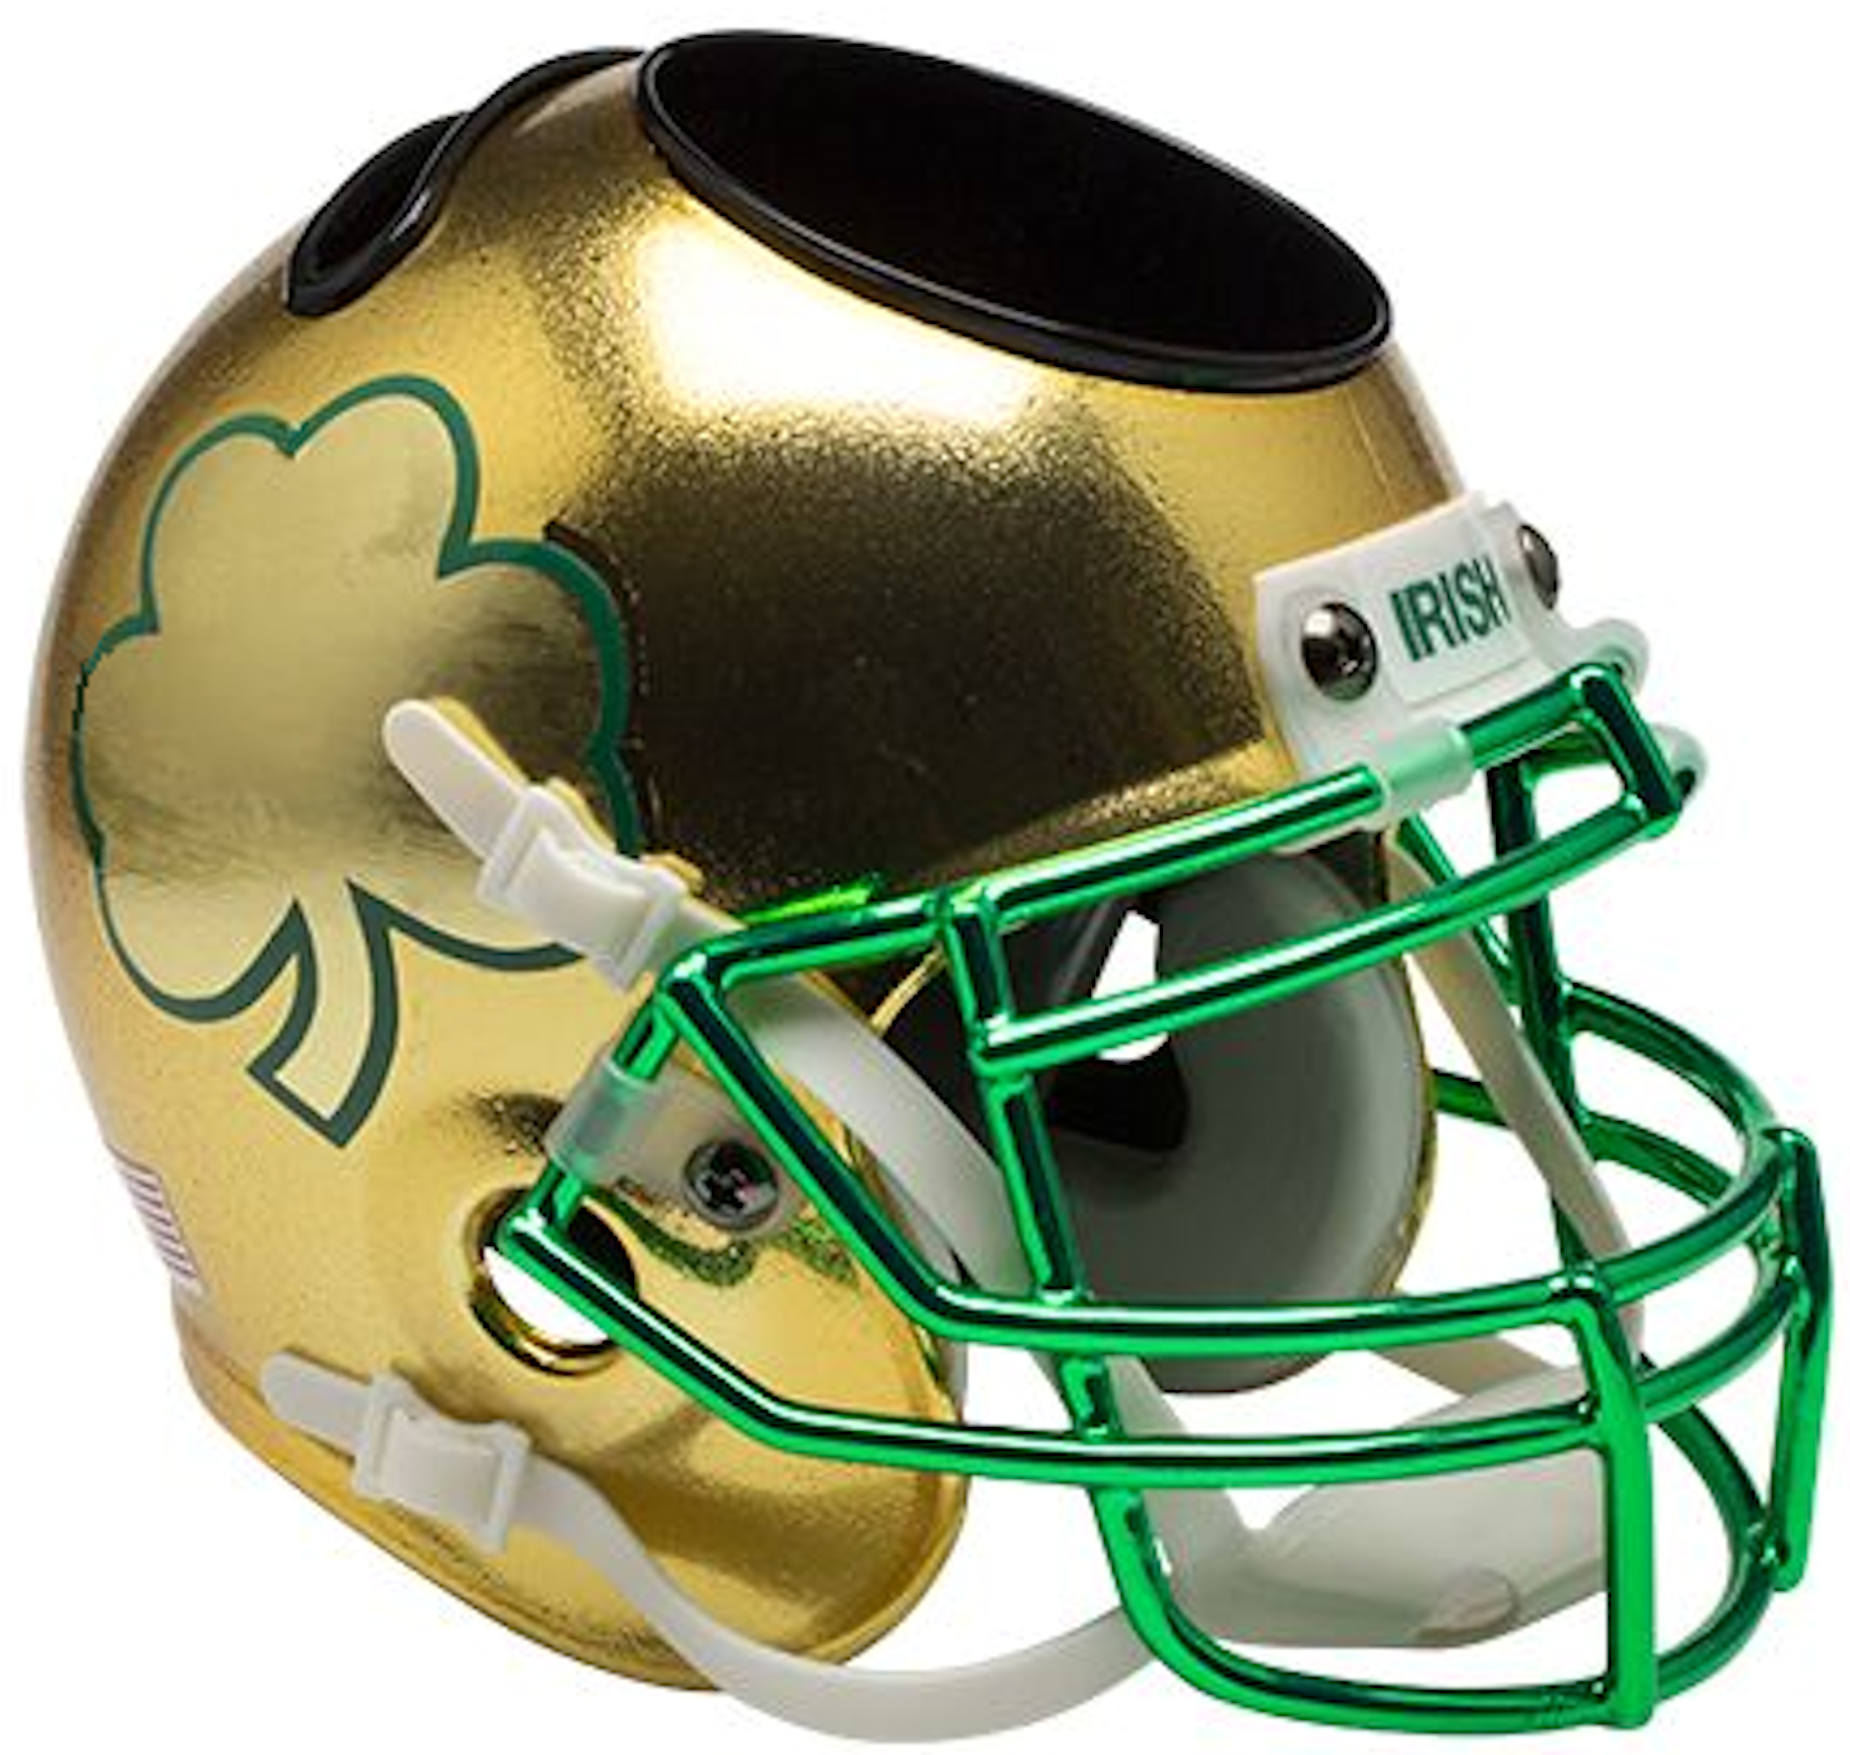 Notre Dame Fighting Irish Miniature Football Helmet Desk Caddy <B>Textured with Shamrock</B>